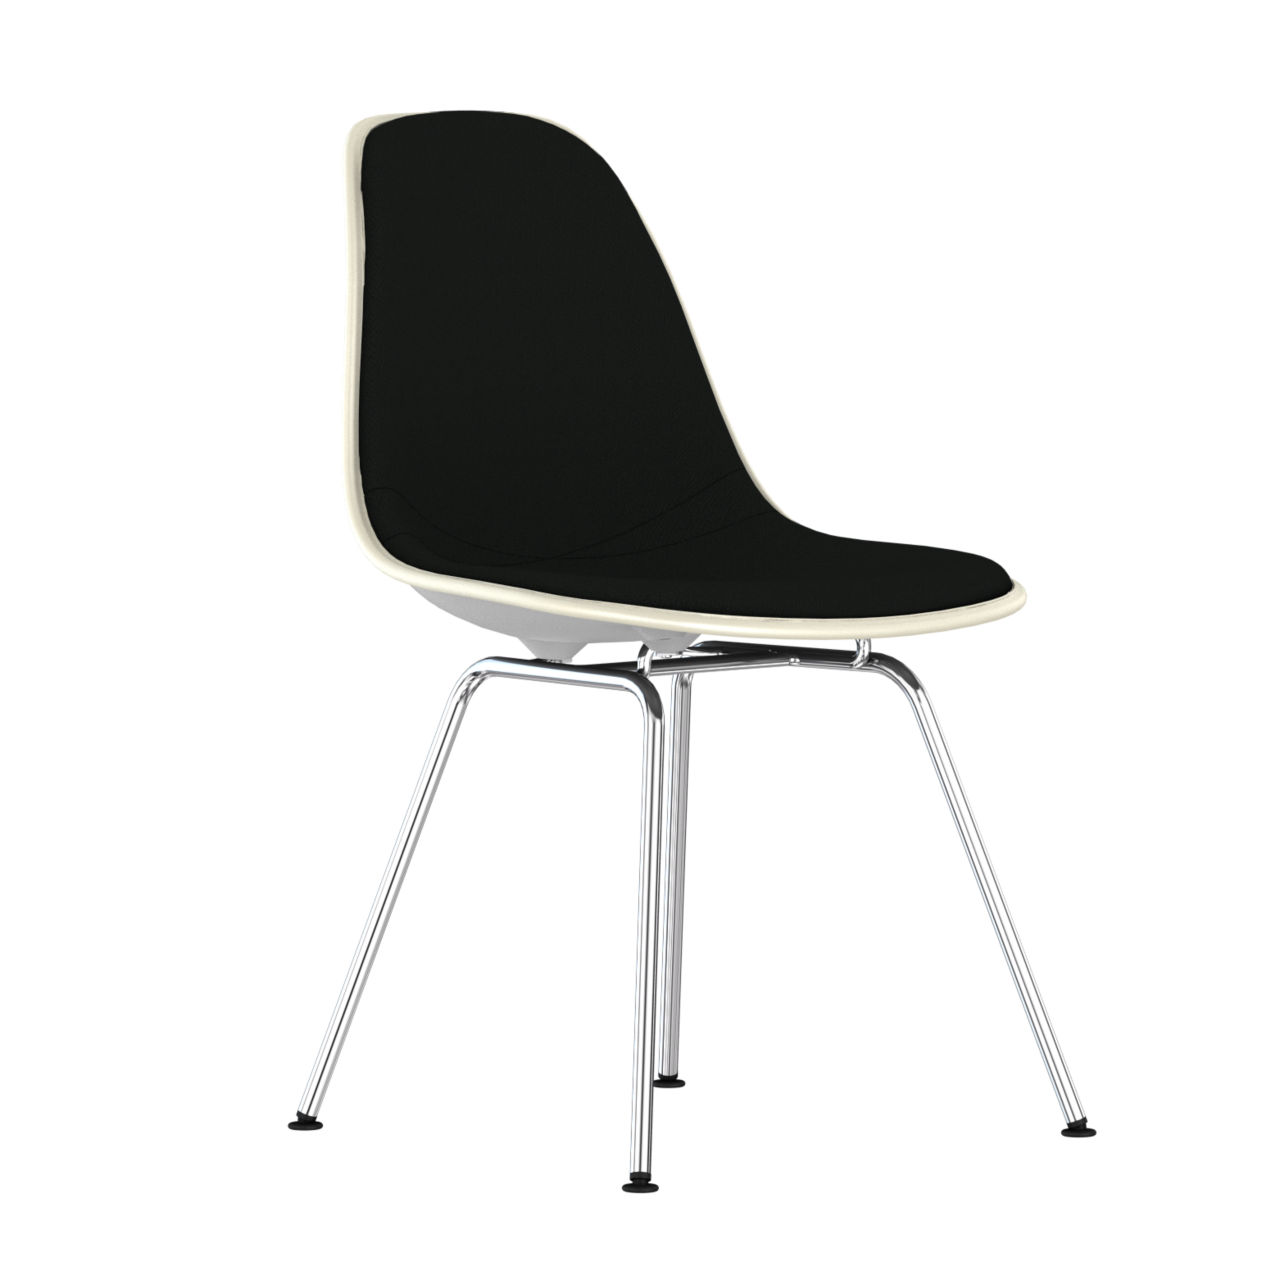 Eames Upholstered Molded Plastic Side Chair with 4 Leg Base in Alpine by Herman Miller